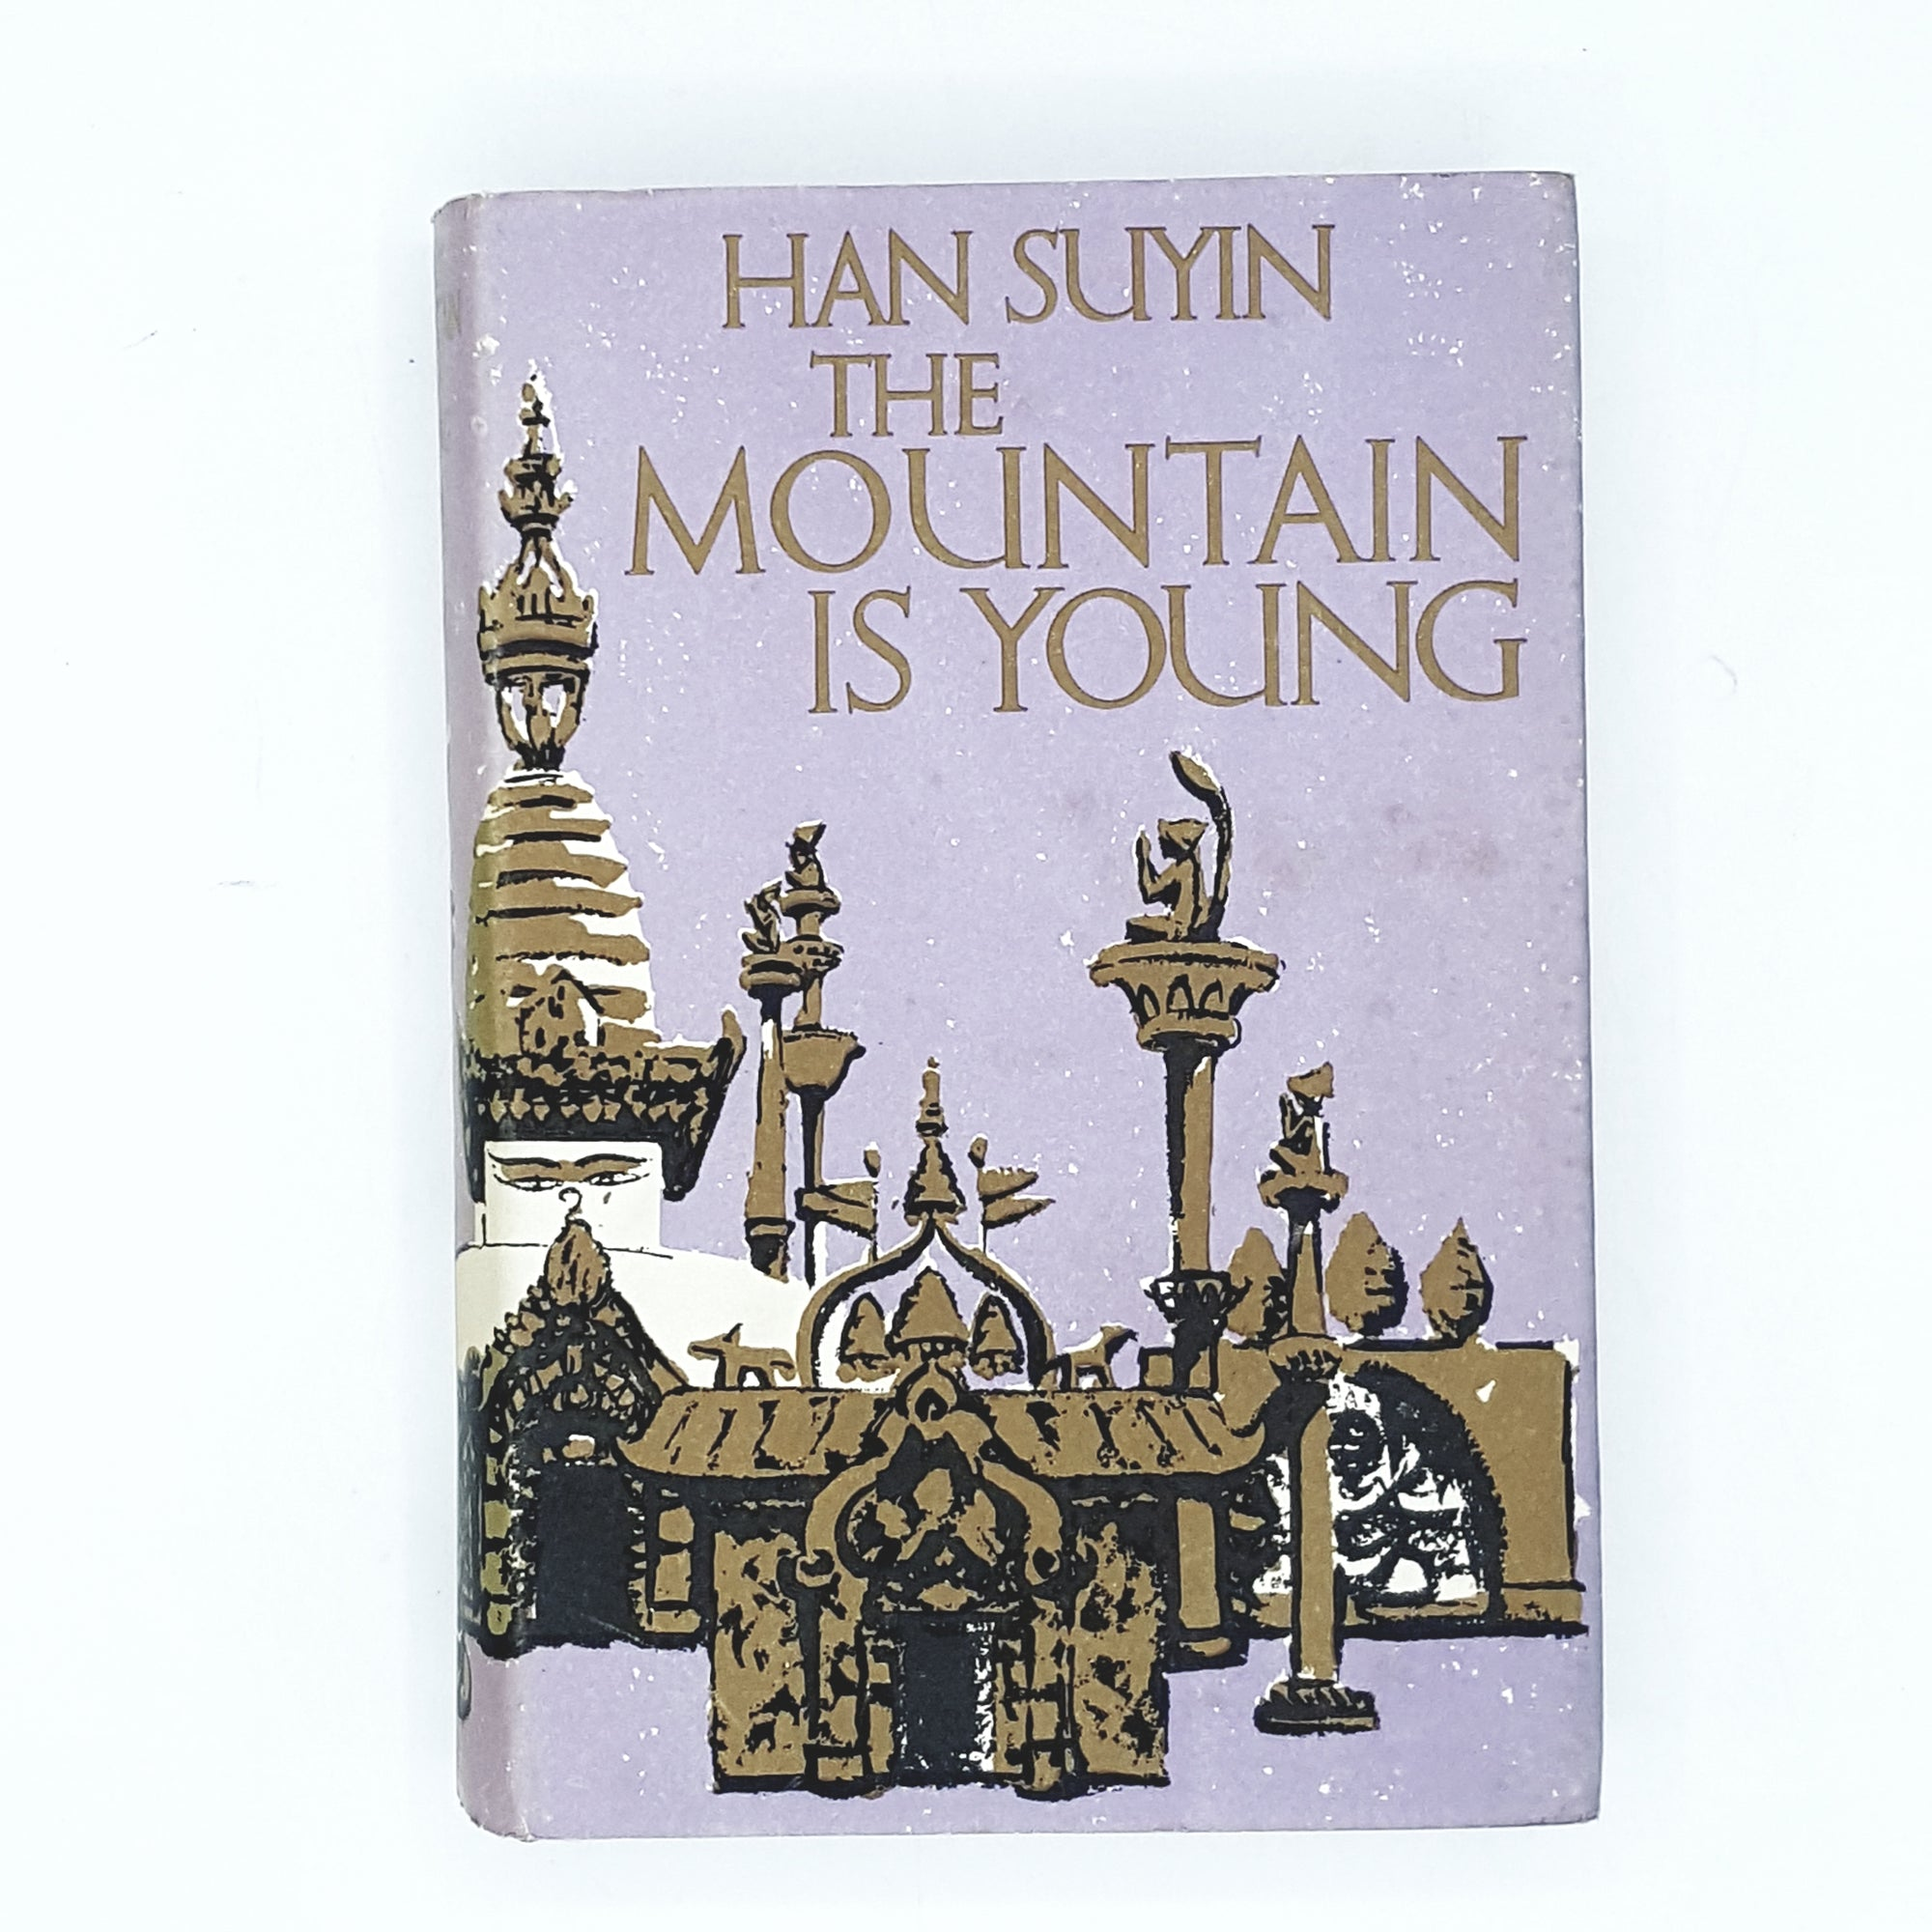 Han Suyin The Mountain is Young 1958